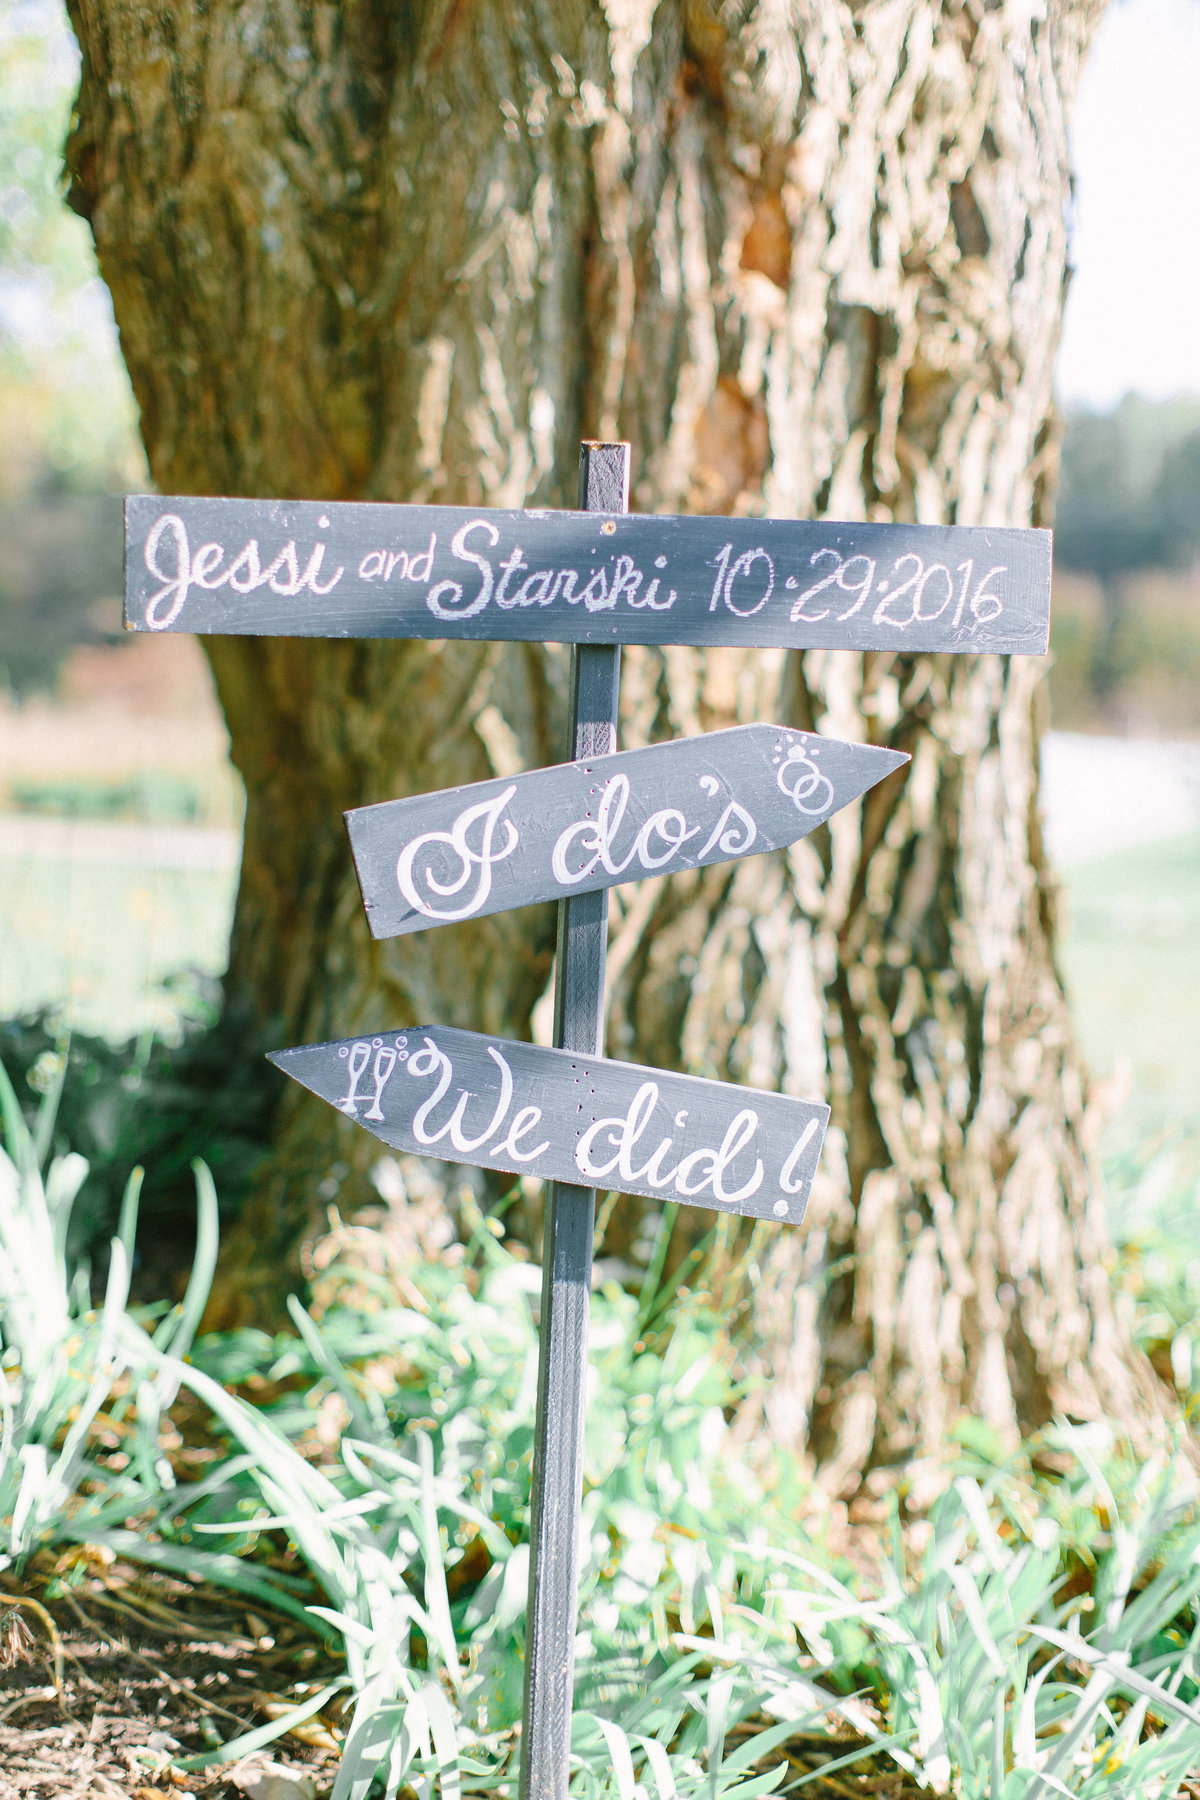 Jessi_Ceremony_direction sign_001